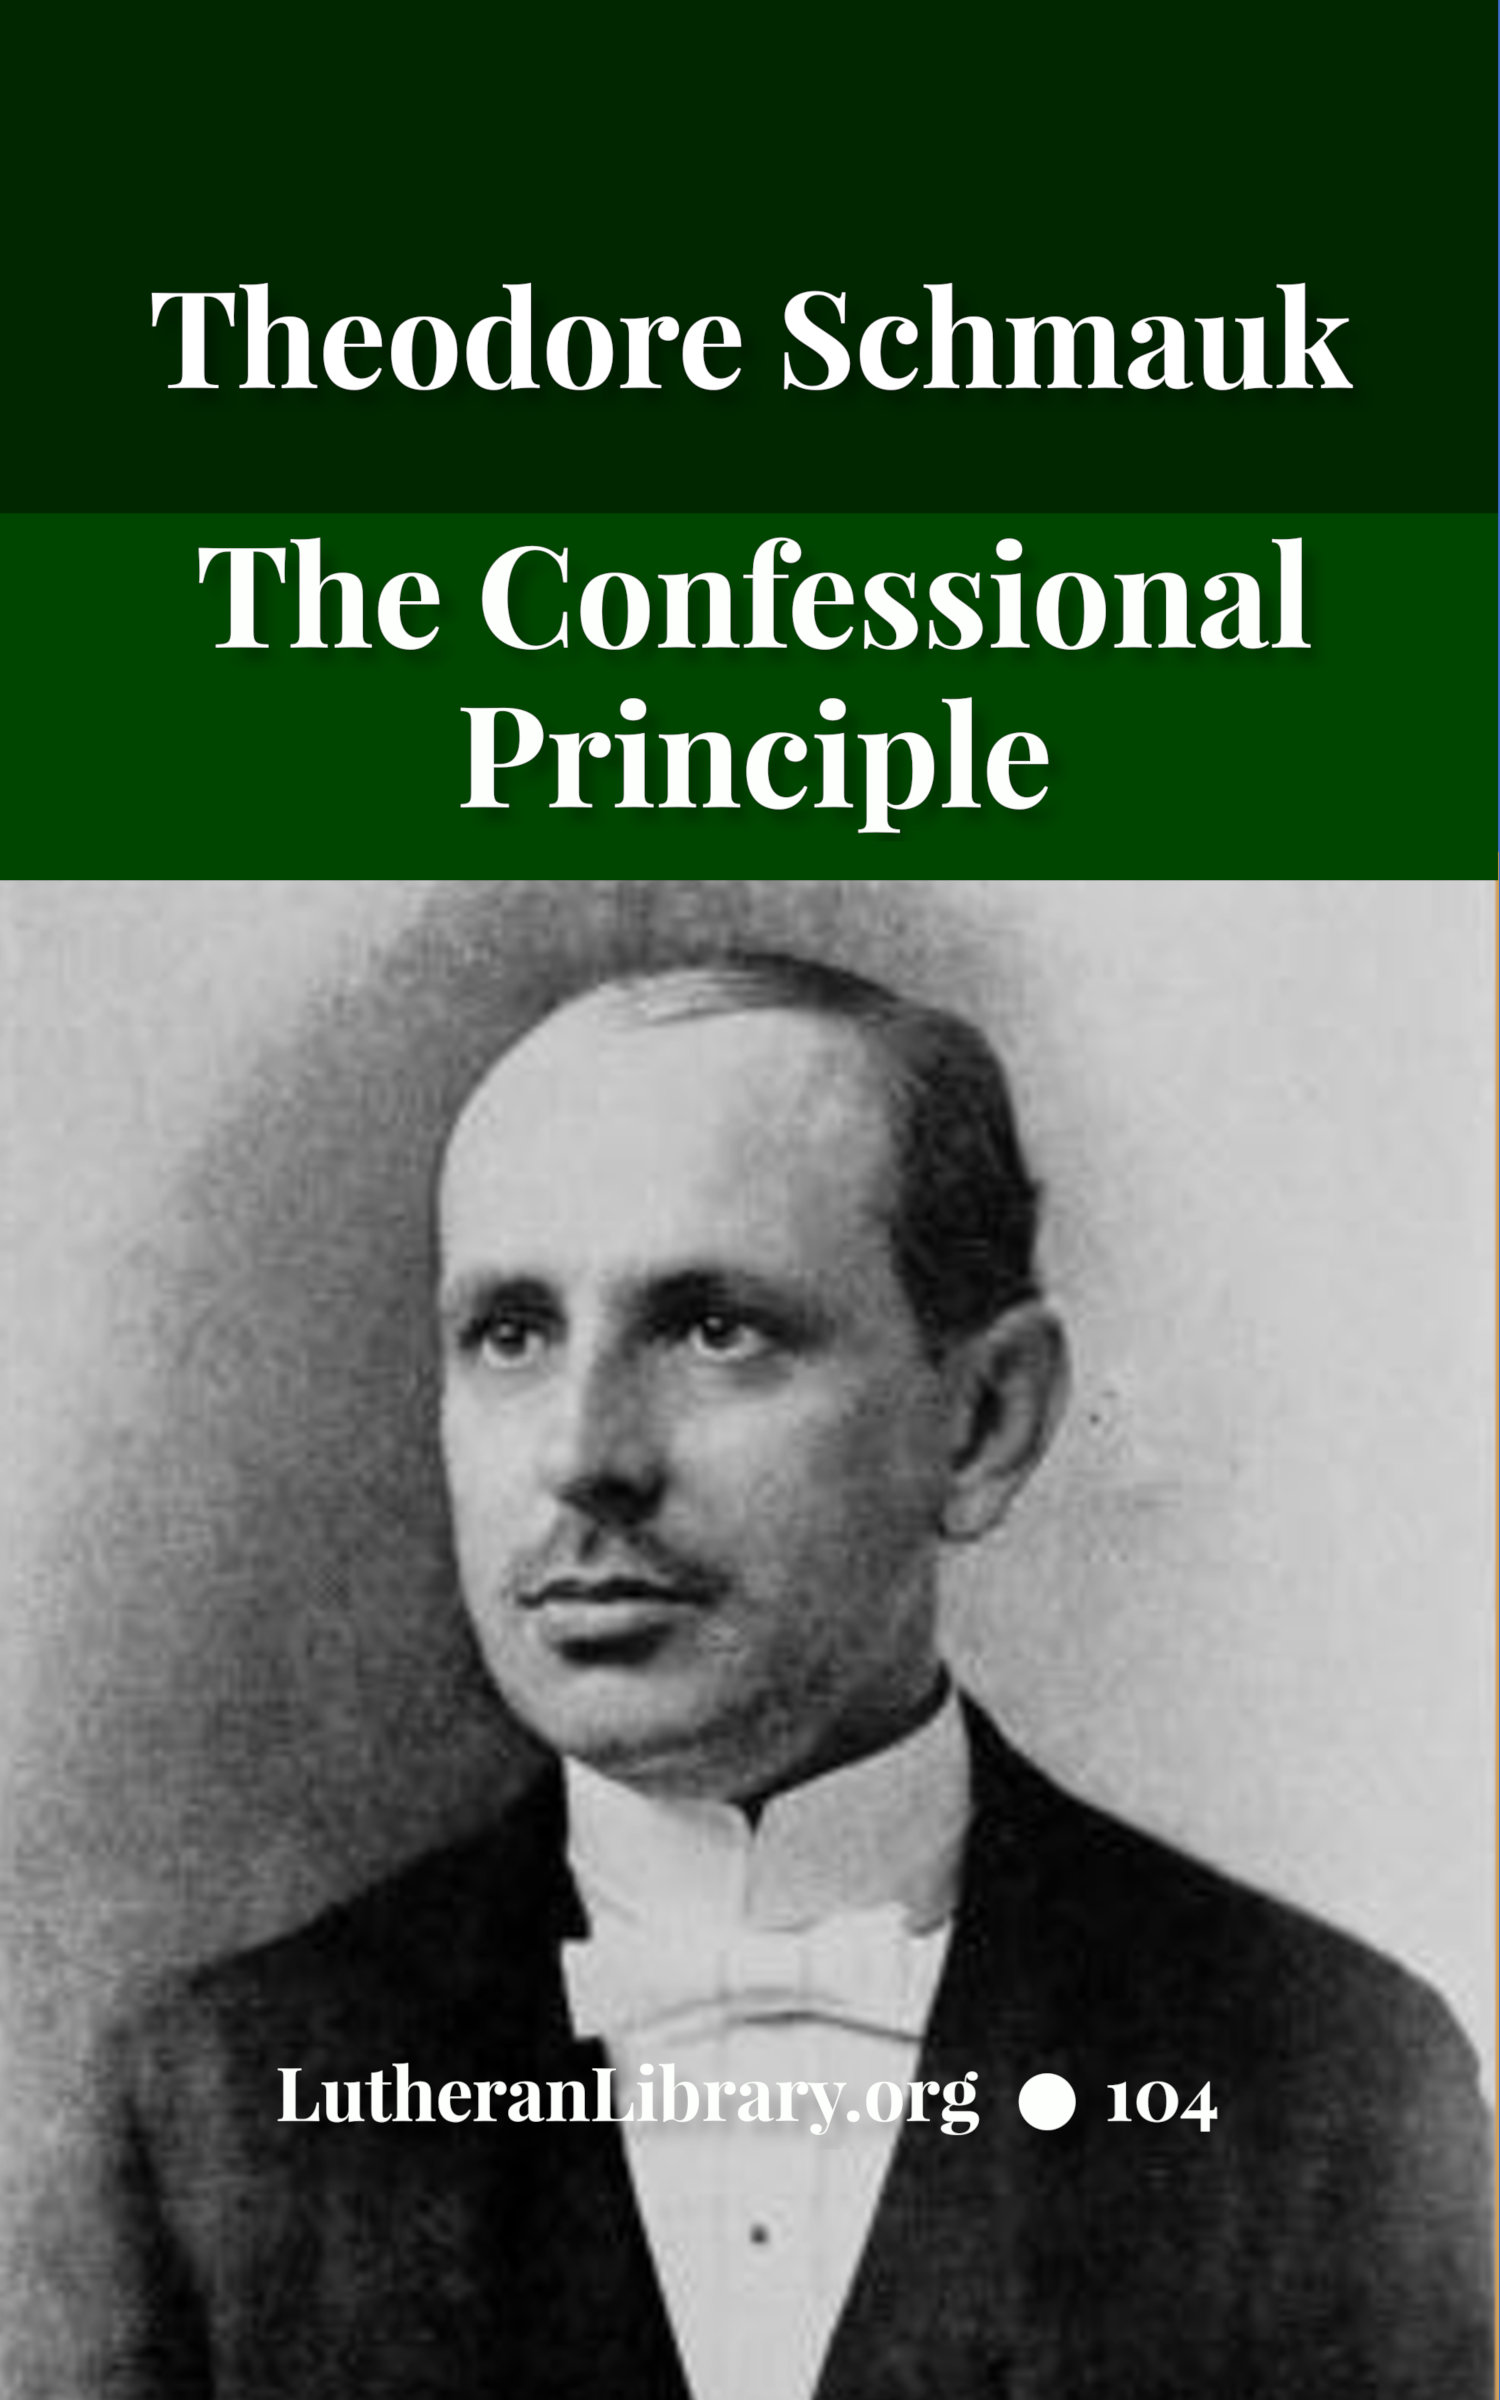 The Confessional Principle by Charles Krauth